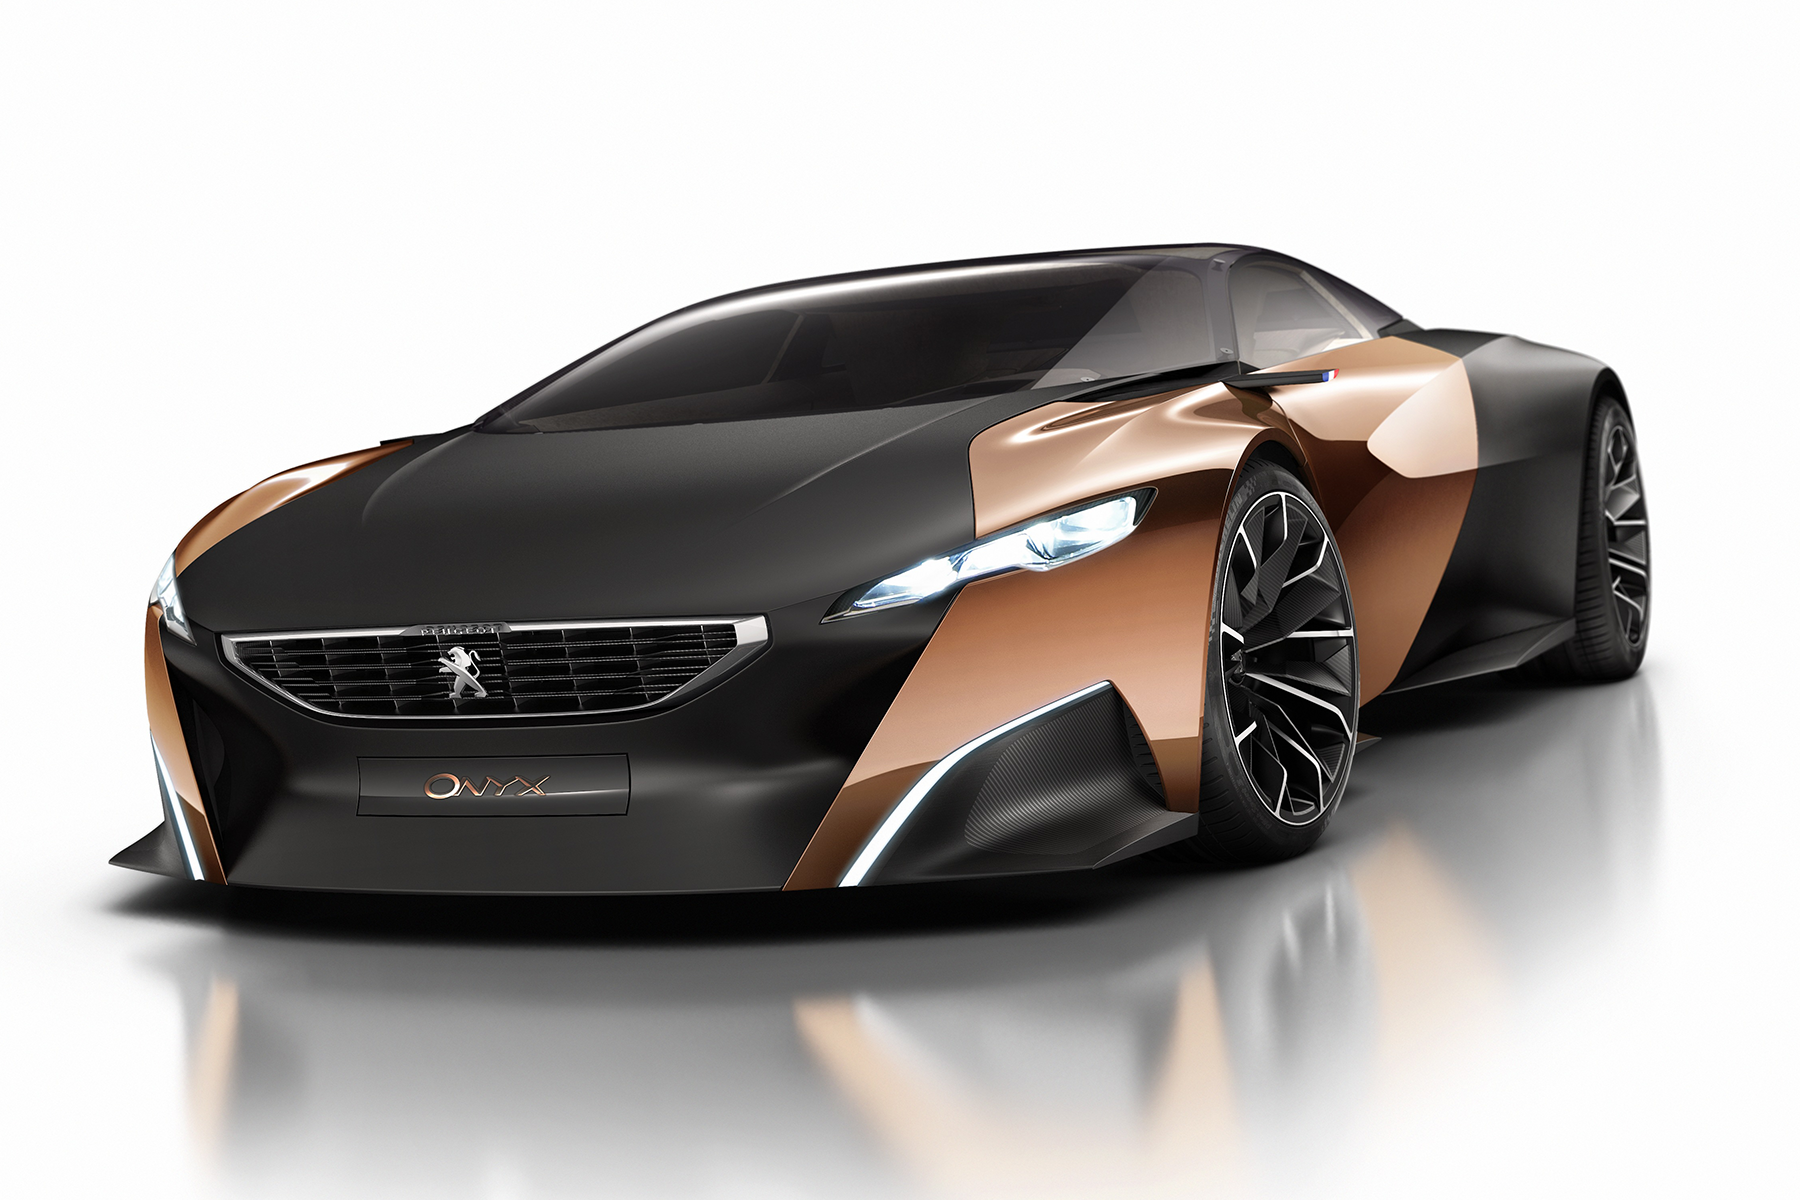 CONCEPT COLLECTIONS CLASSIC: 2012 PEUGEOT ONYX